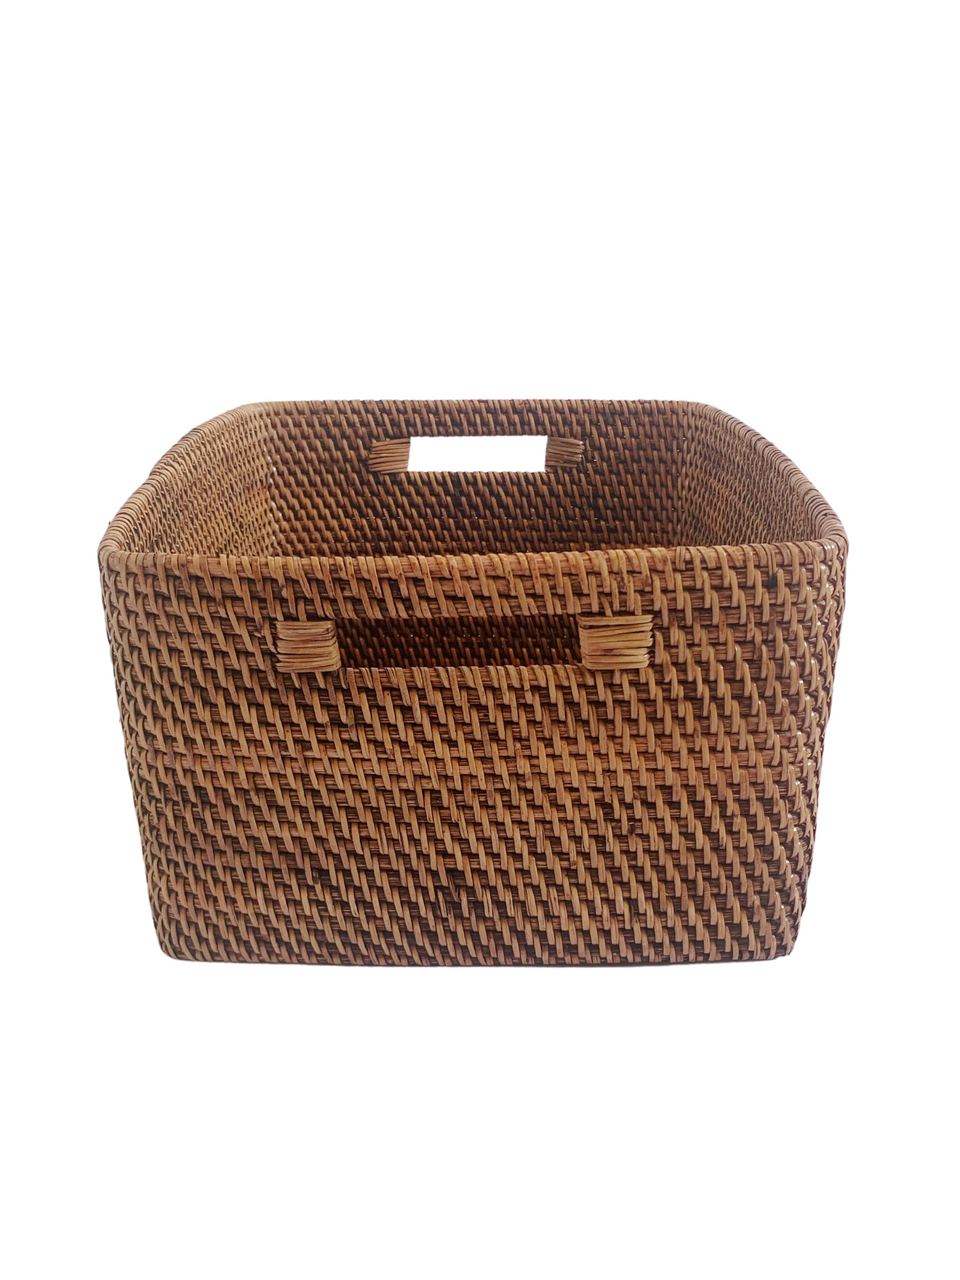 Storage Basket - Large - Antiqued Rattan